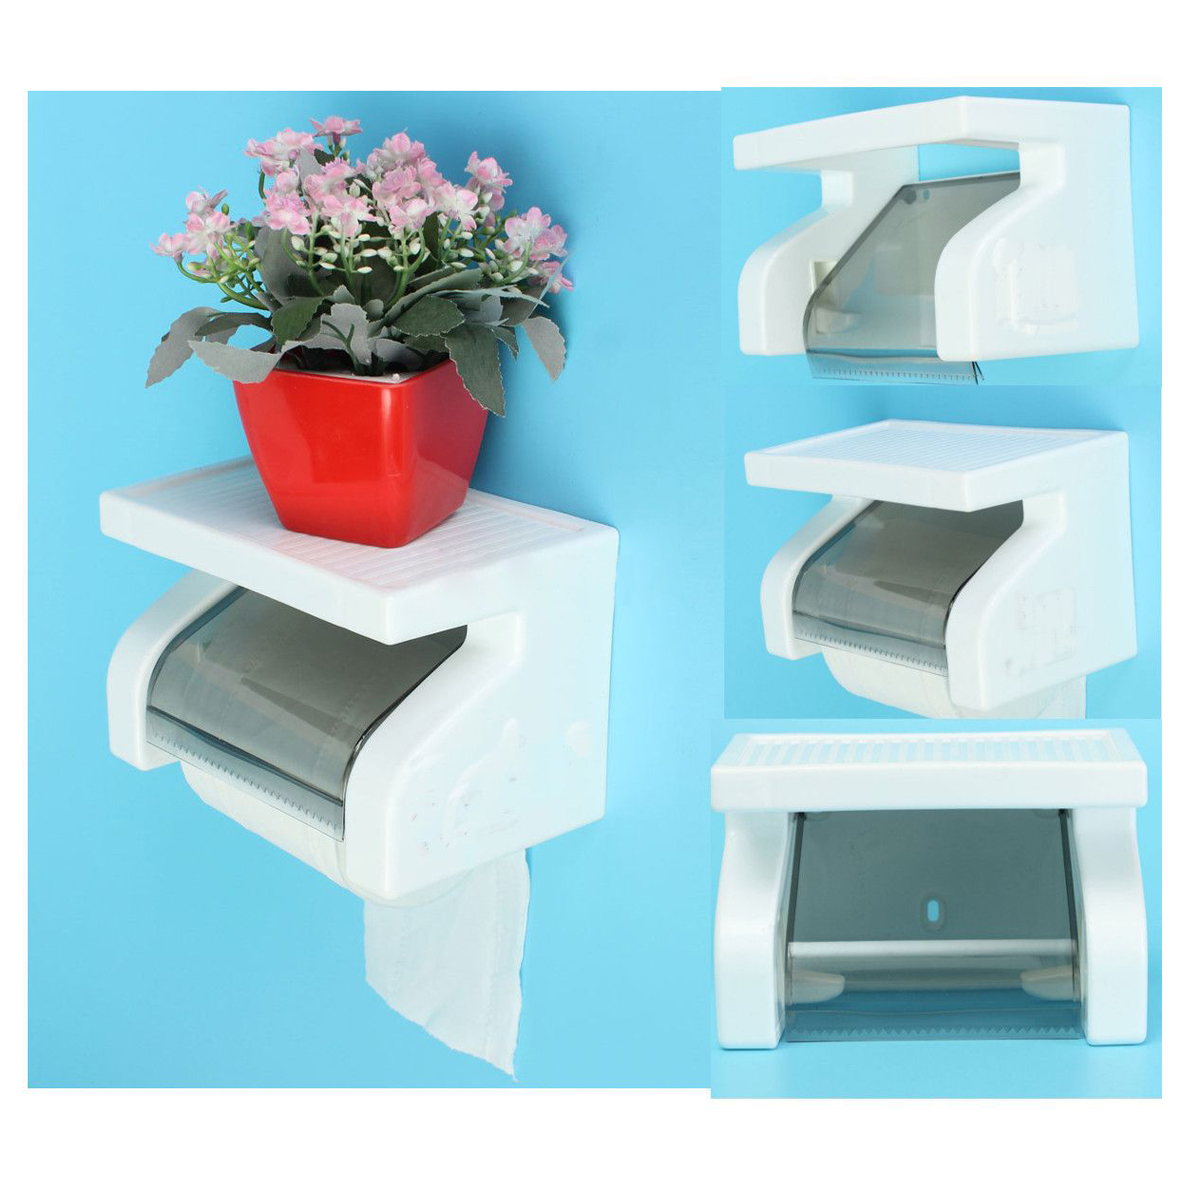 DSHA New Hot Waterproof Toilet Paper Holder Tissue Roll Stand Box with Shelf Rack Bathroom